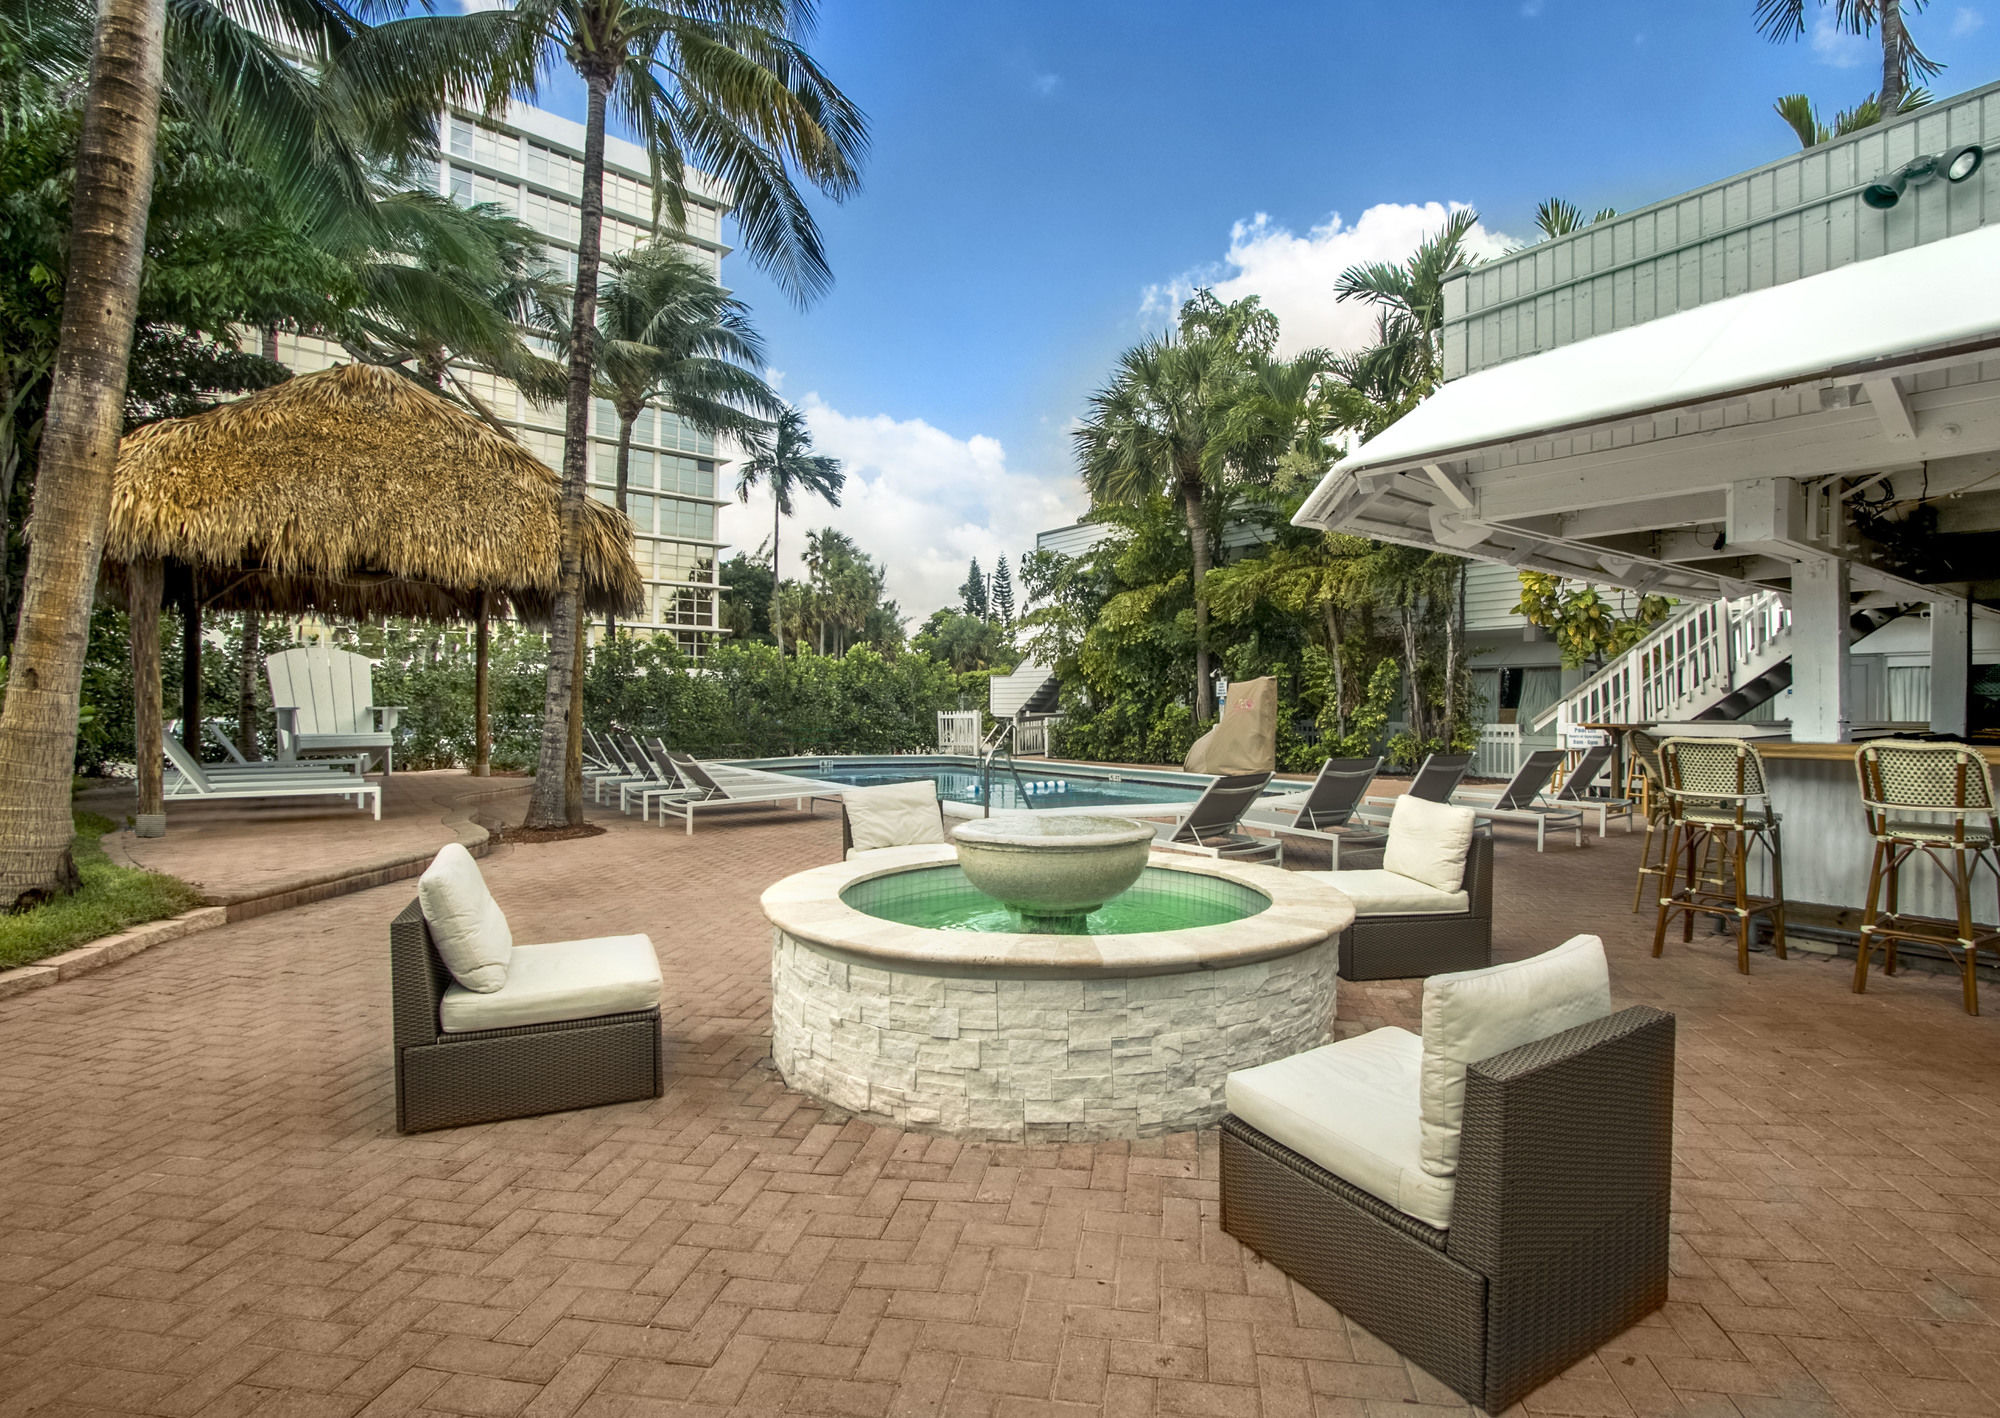 Ft Lauderdale Hotel Coupons For Ft Lauderdale Florida